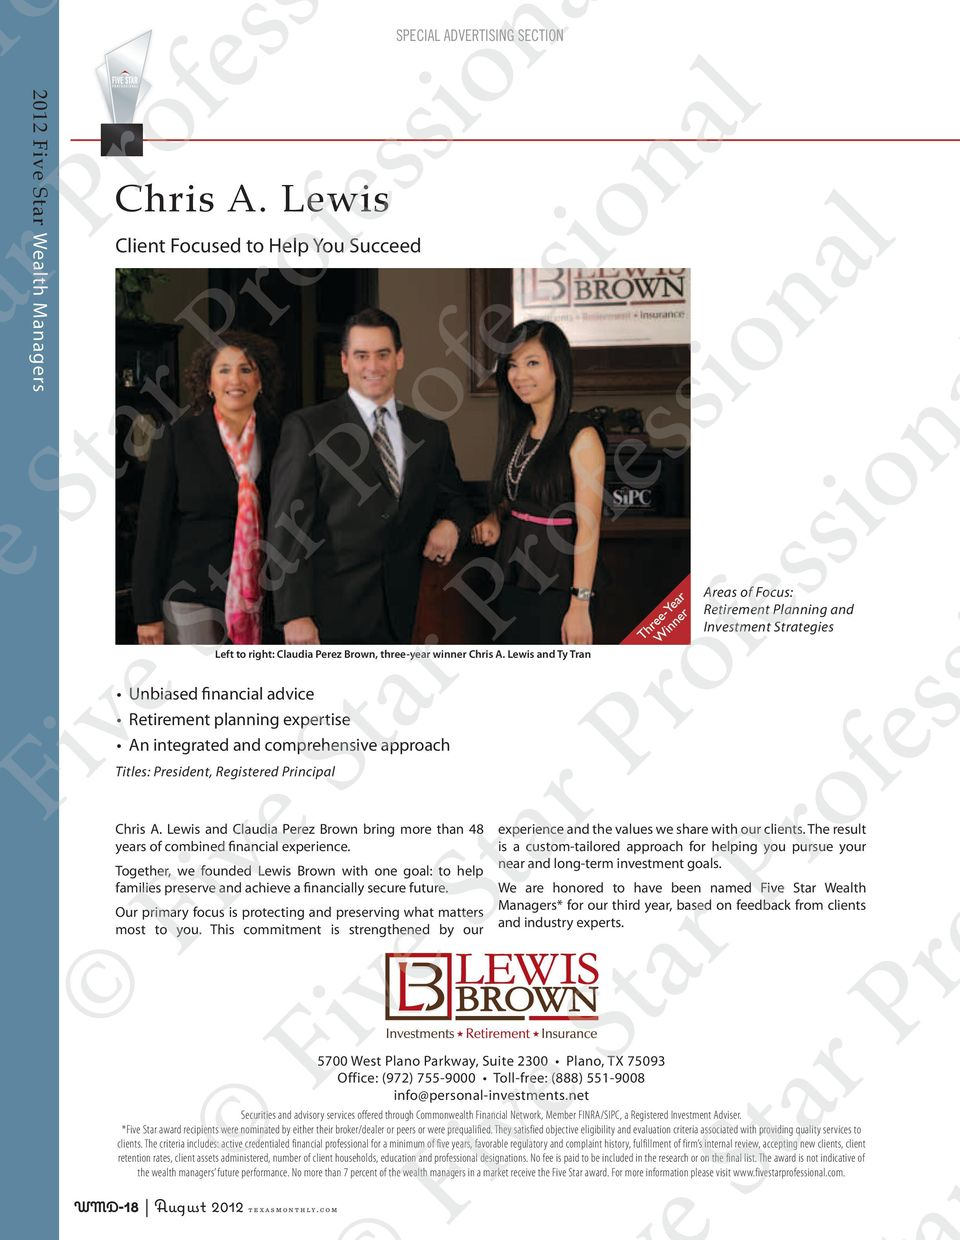 Lewis and Claudia Perez Brown bring more than 48 years of combined financial experience.